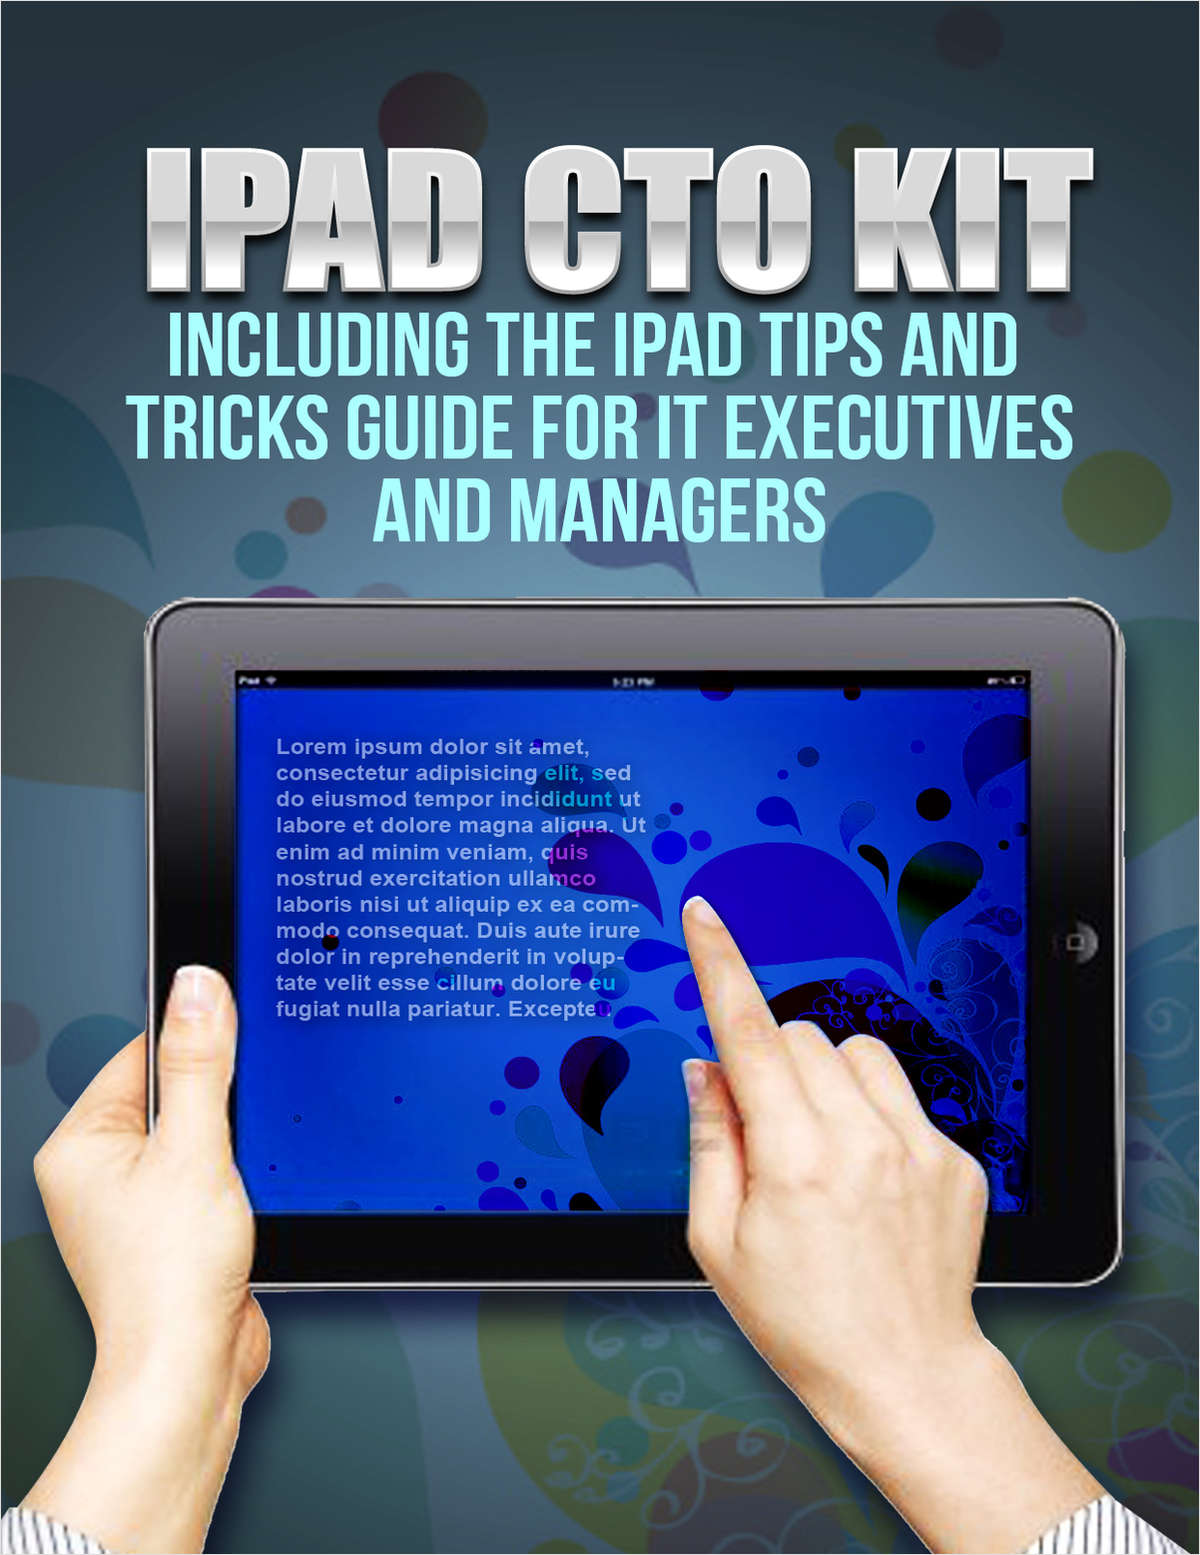 iPad CTO Kit - including the iPad Tips and Tricks Guide for IT Executives and Managers